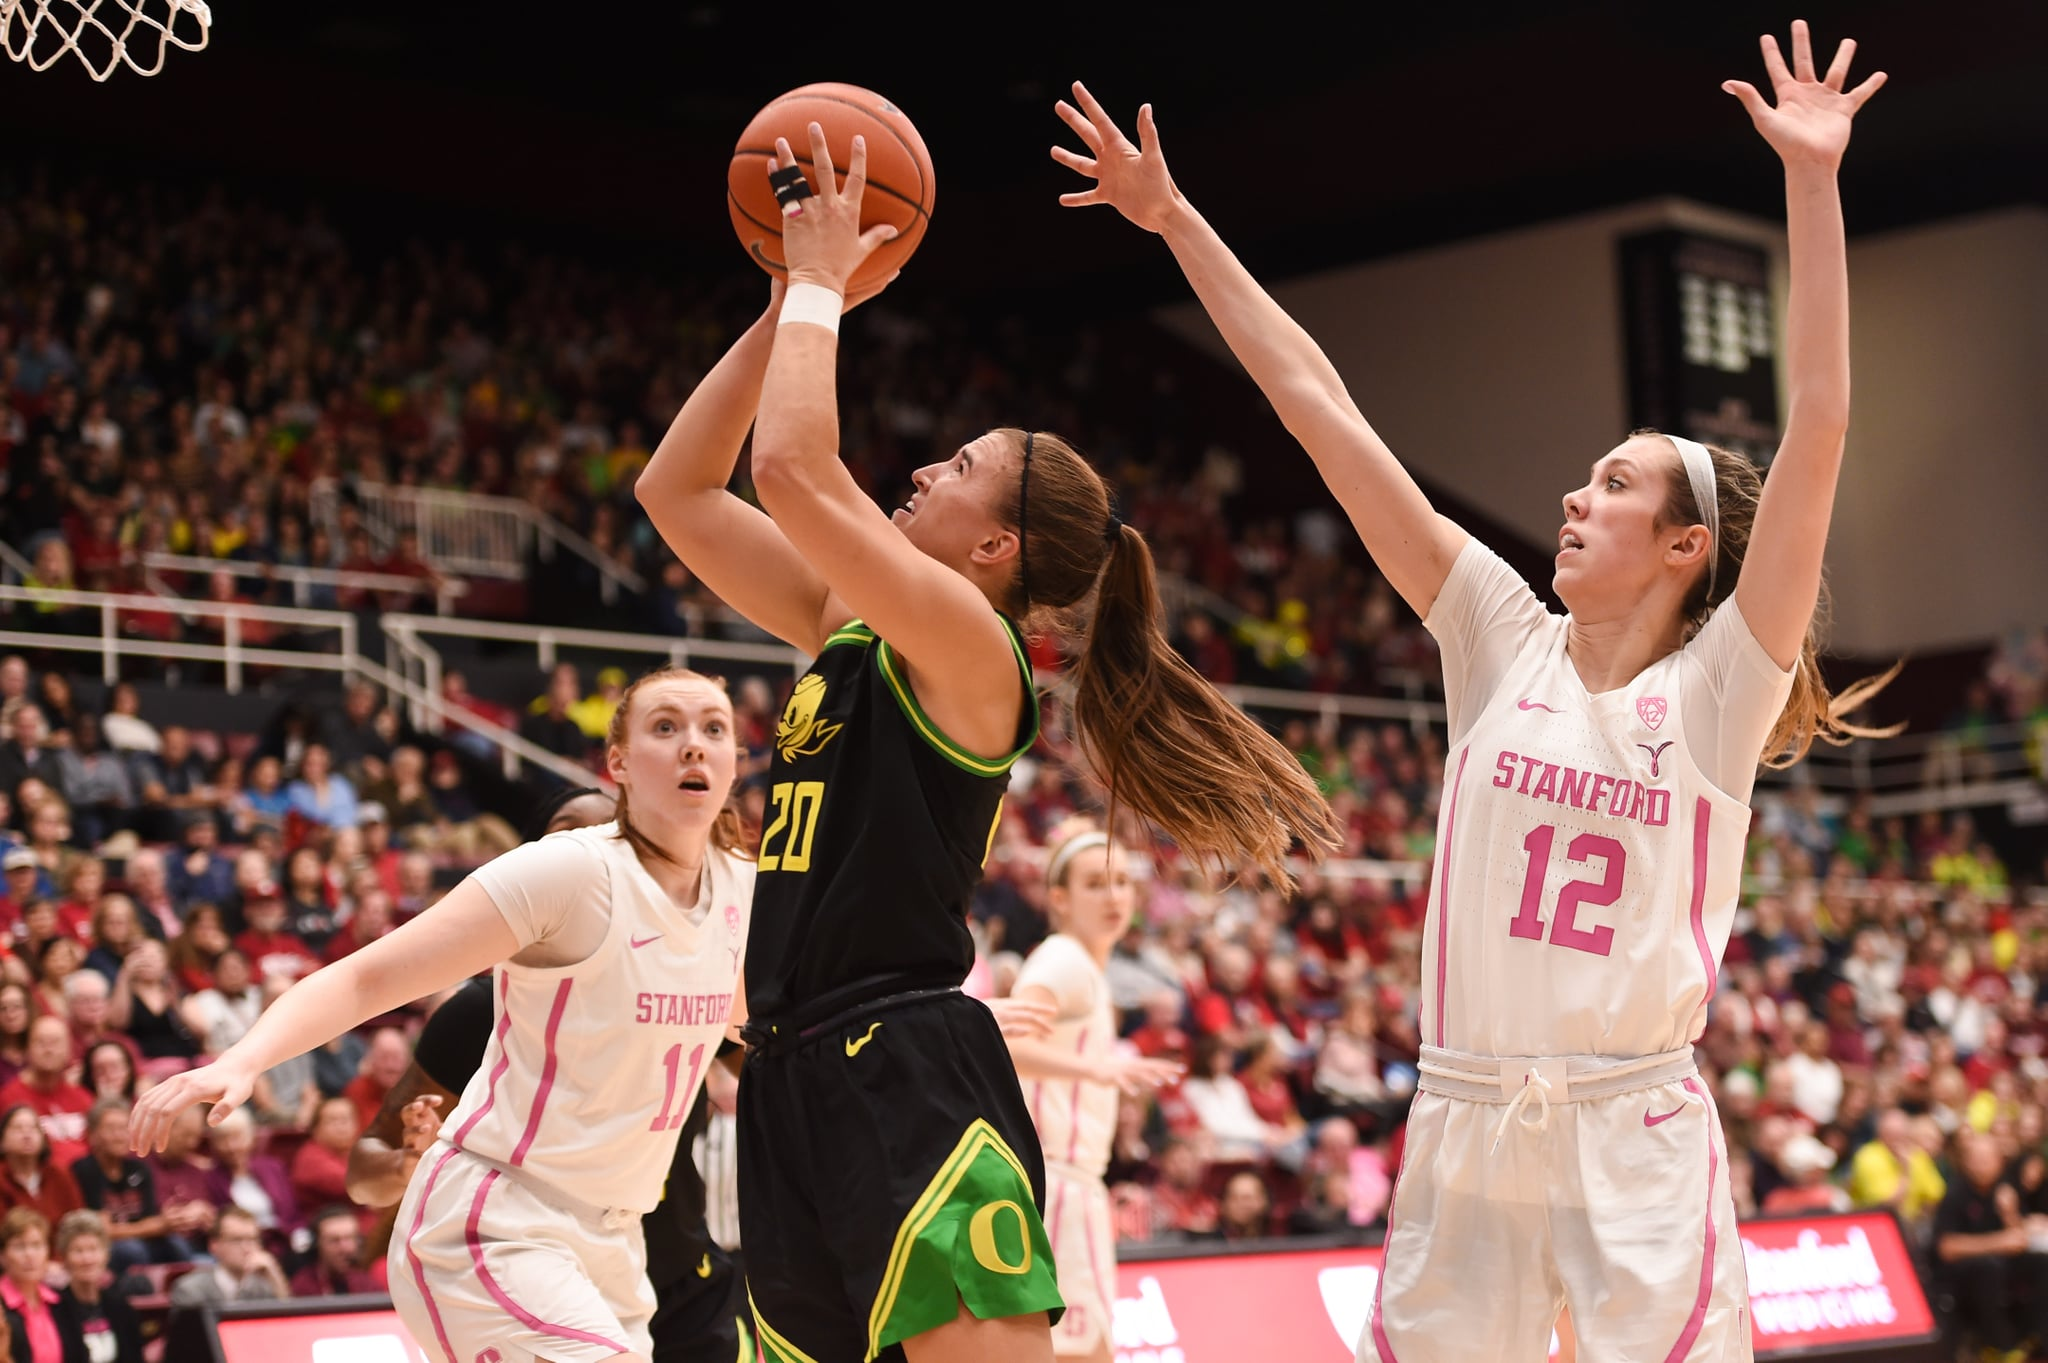 PALO ALTO, CA - FEBRUARY 24: Oregon Ducks guard Sabrina Ionescu (20) shoots over Stanford Cardinal guard Lexie Hull (12) during the NCAA women's basketball game between the Oregon Ducks and the Stanford Cardinal at Maples Pavilion on February 24, 2020 in Palo Alto, CA. (Photo by Cody Glenn/Icon Sportswire via Getty Images)